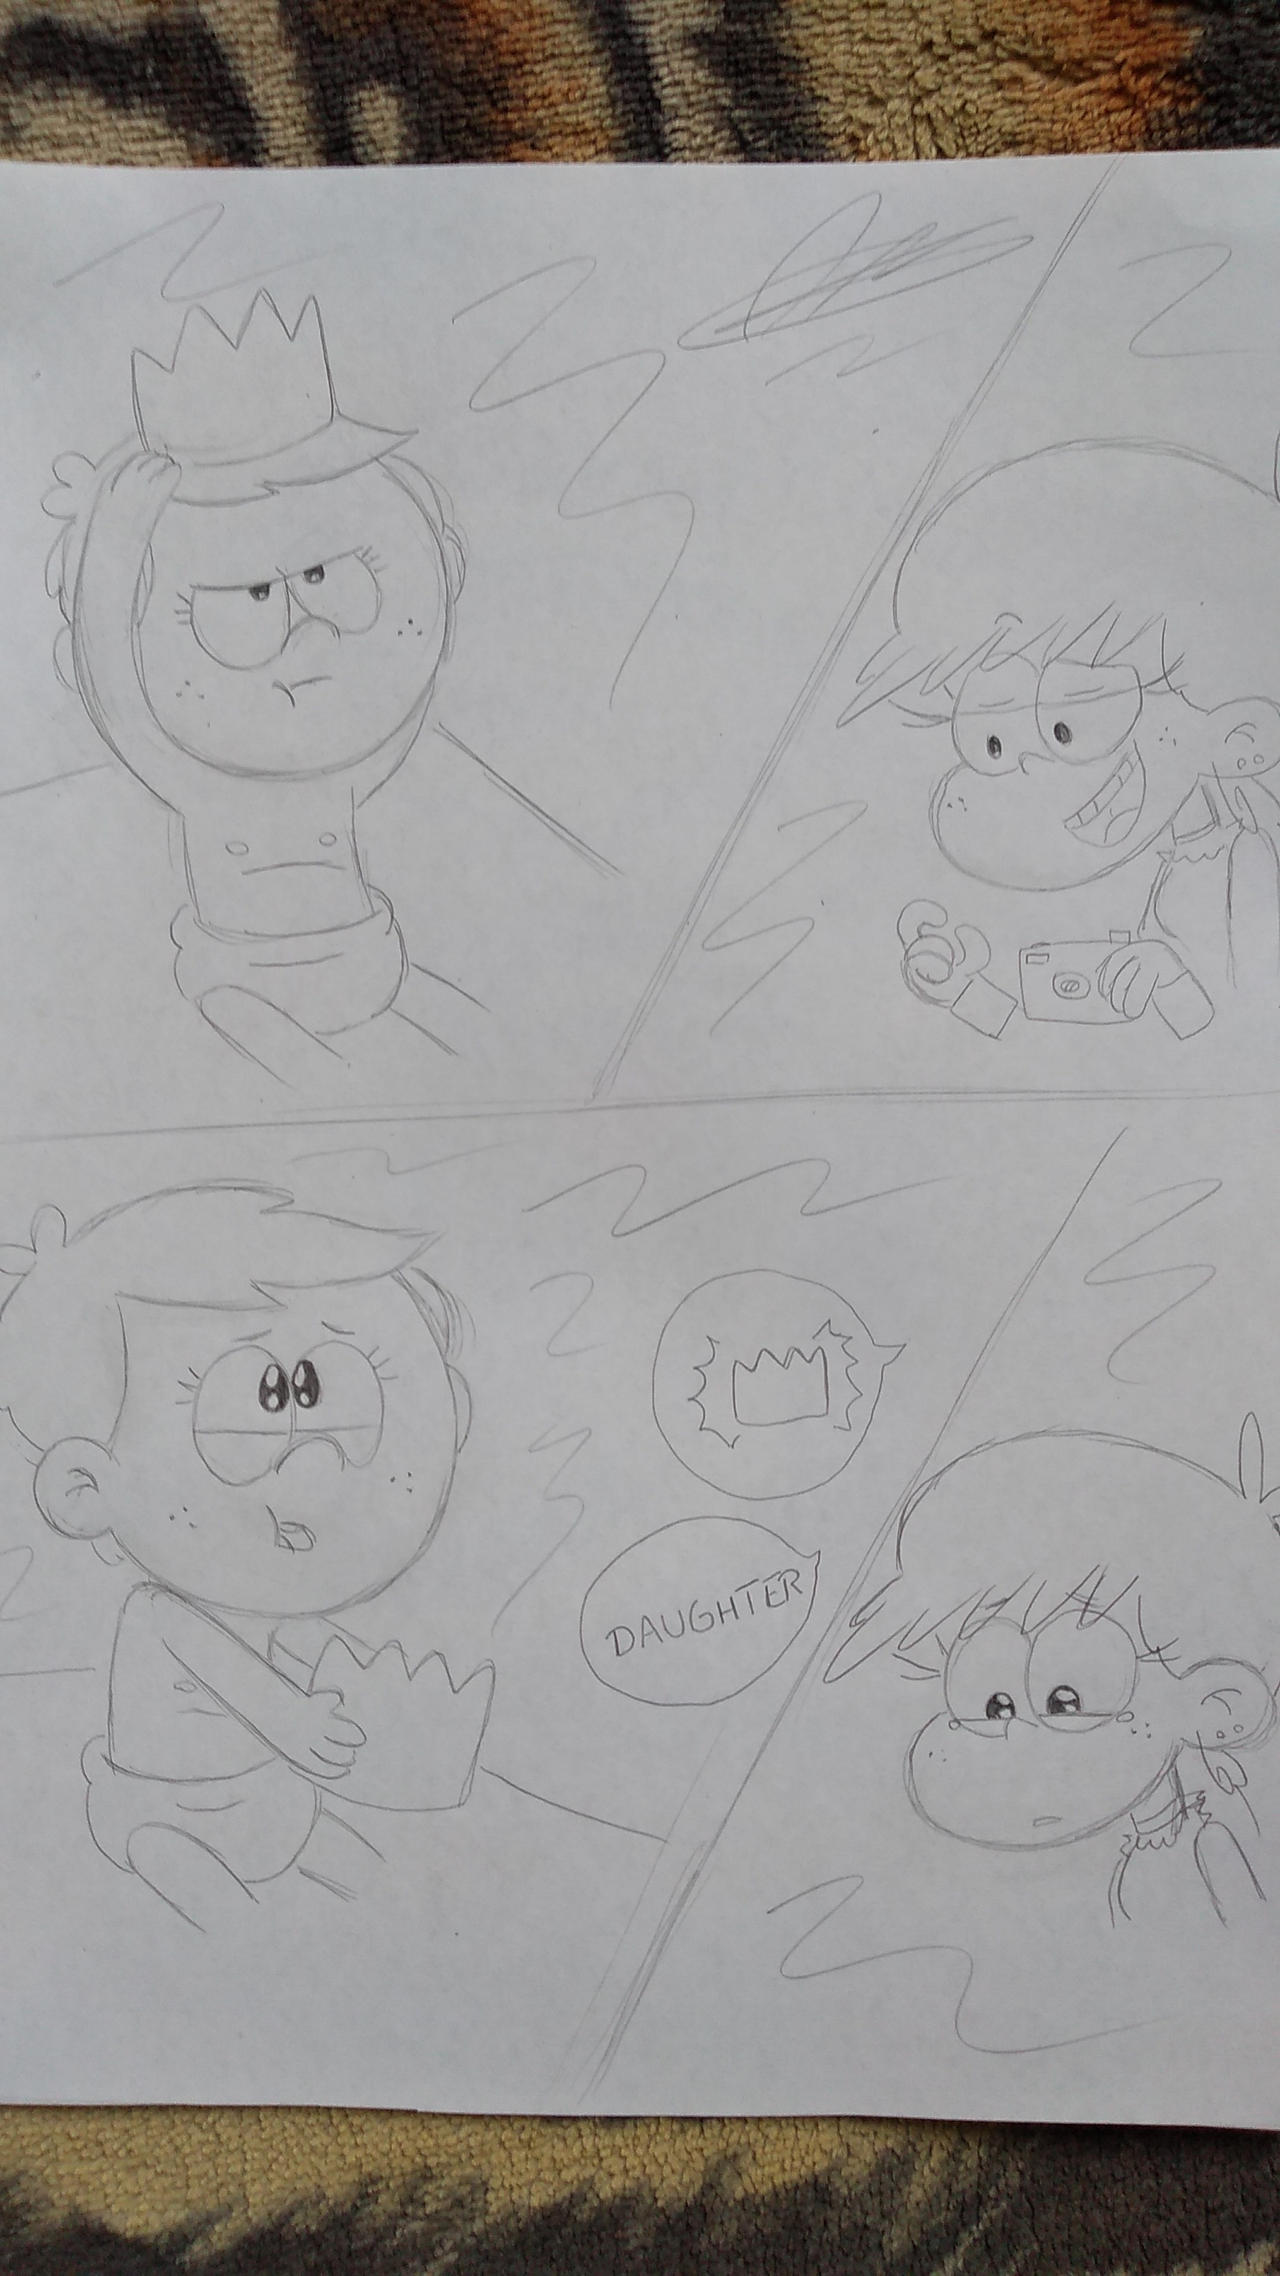 The Steps Of A Mother Short Stories 6 By Crock2121 On Deviantart